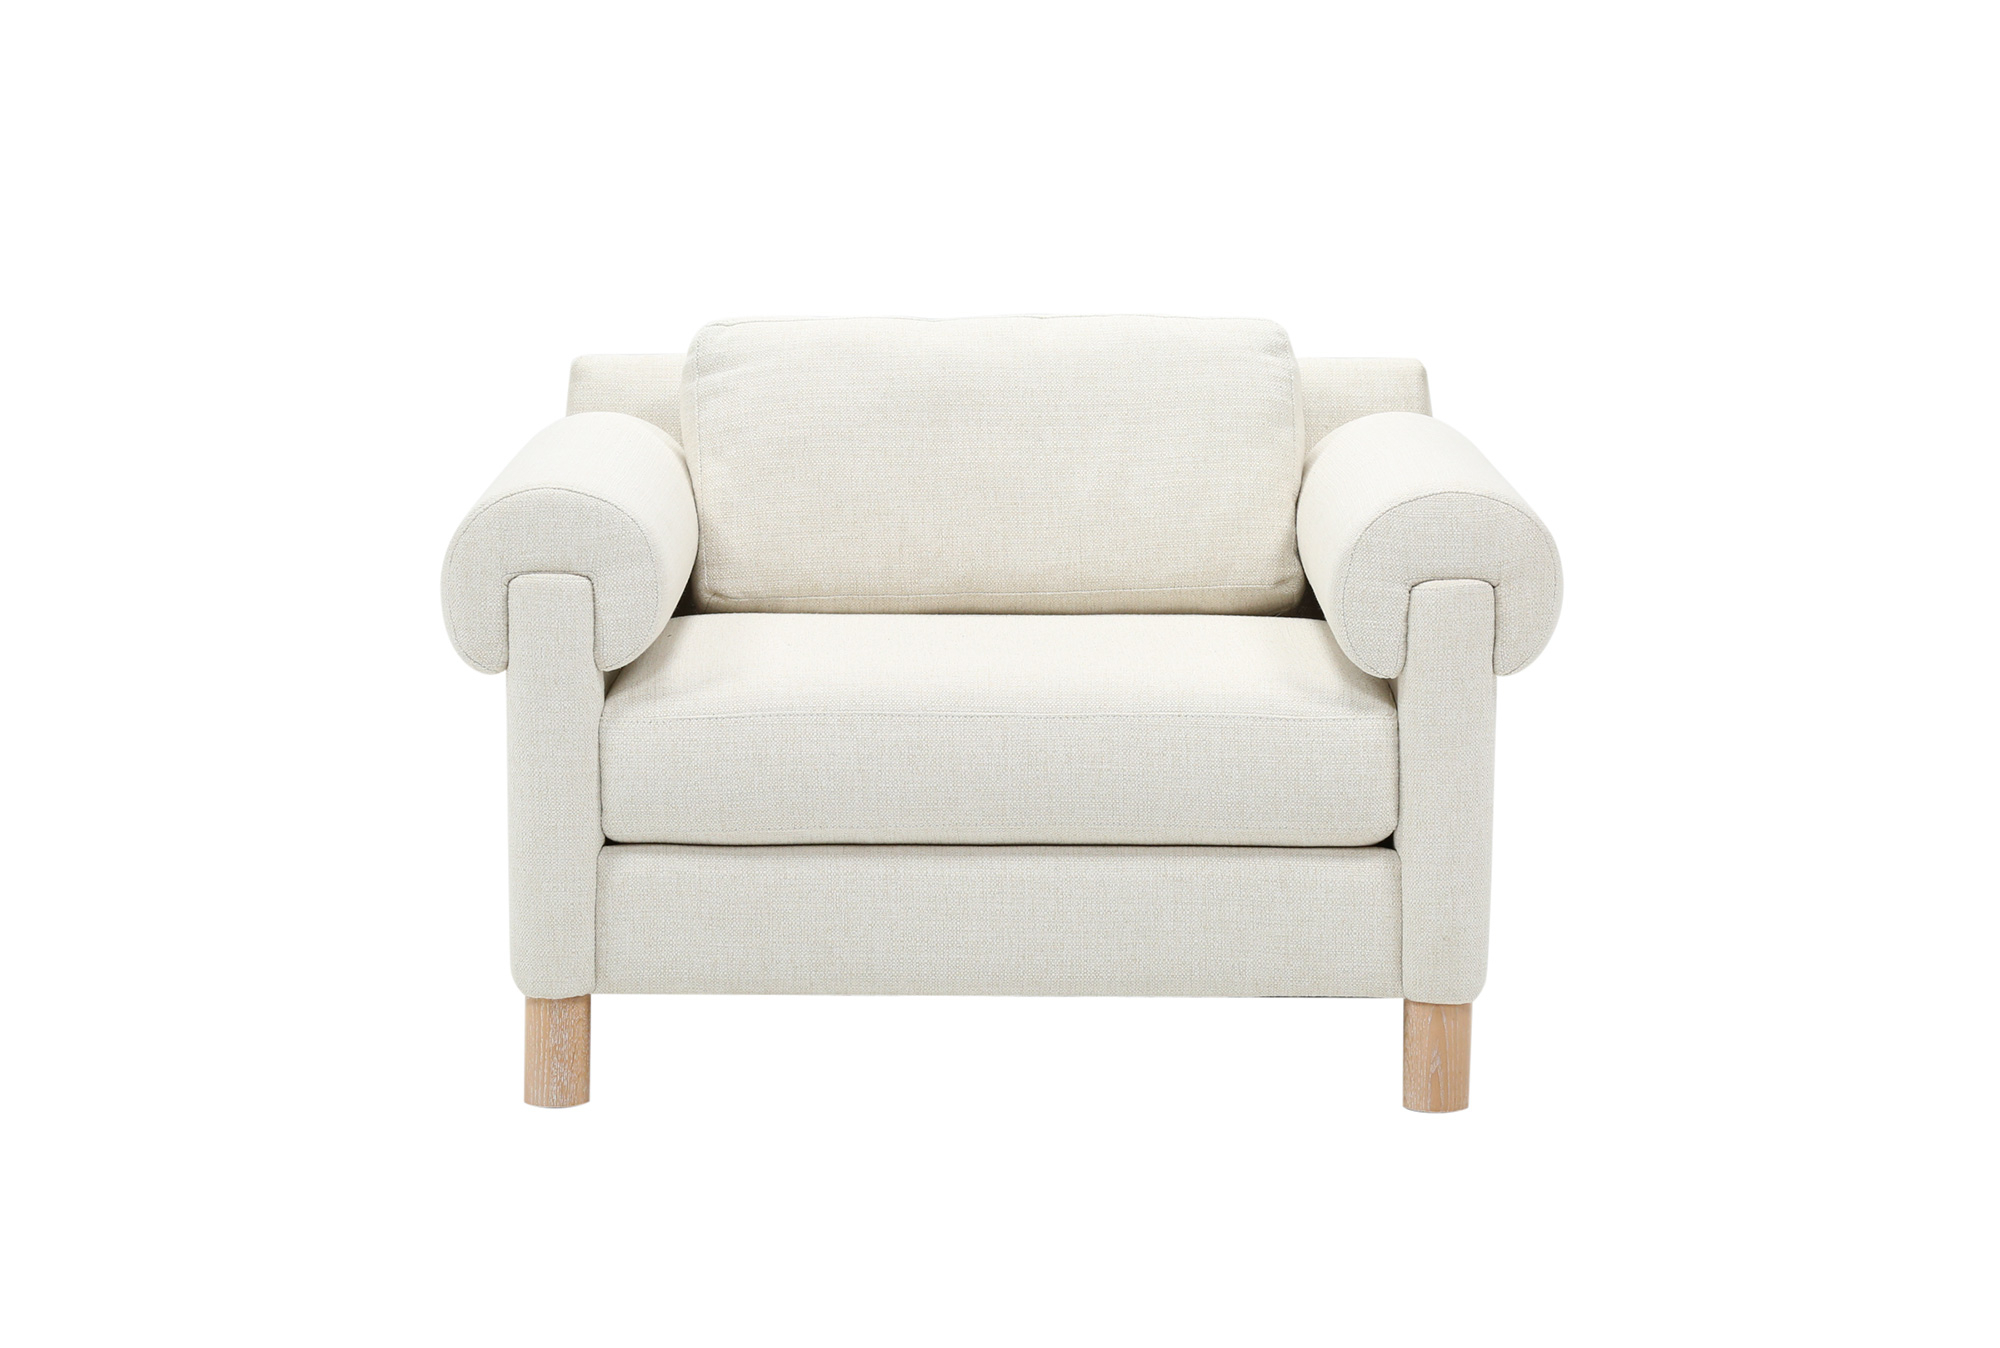 Nate Berkus, Jeremiah Brent For Living Spaces Furniture | People Pertaining To Gwen Sofa Chairs By Nate Berkus And Jeremiah Brent (Photo 3 of 25)